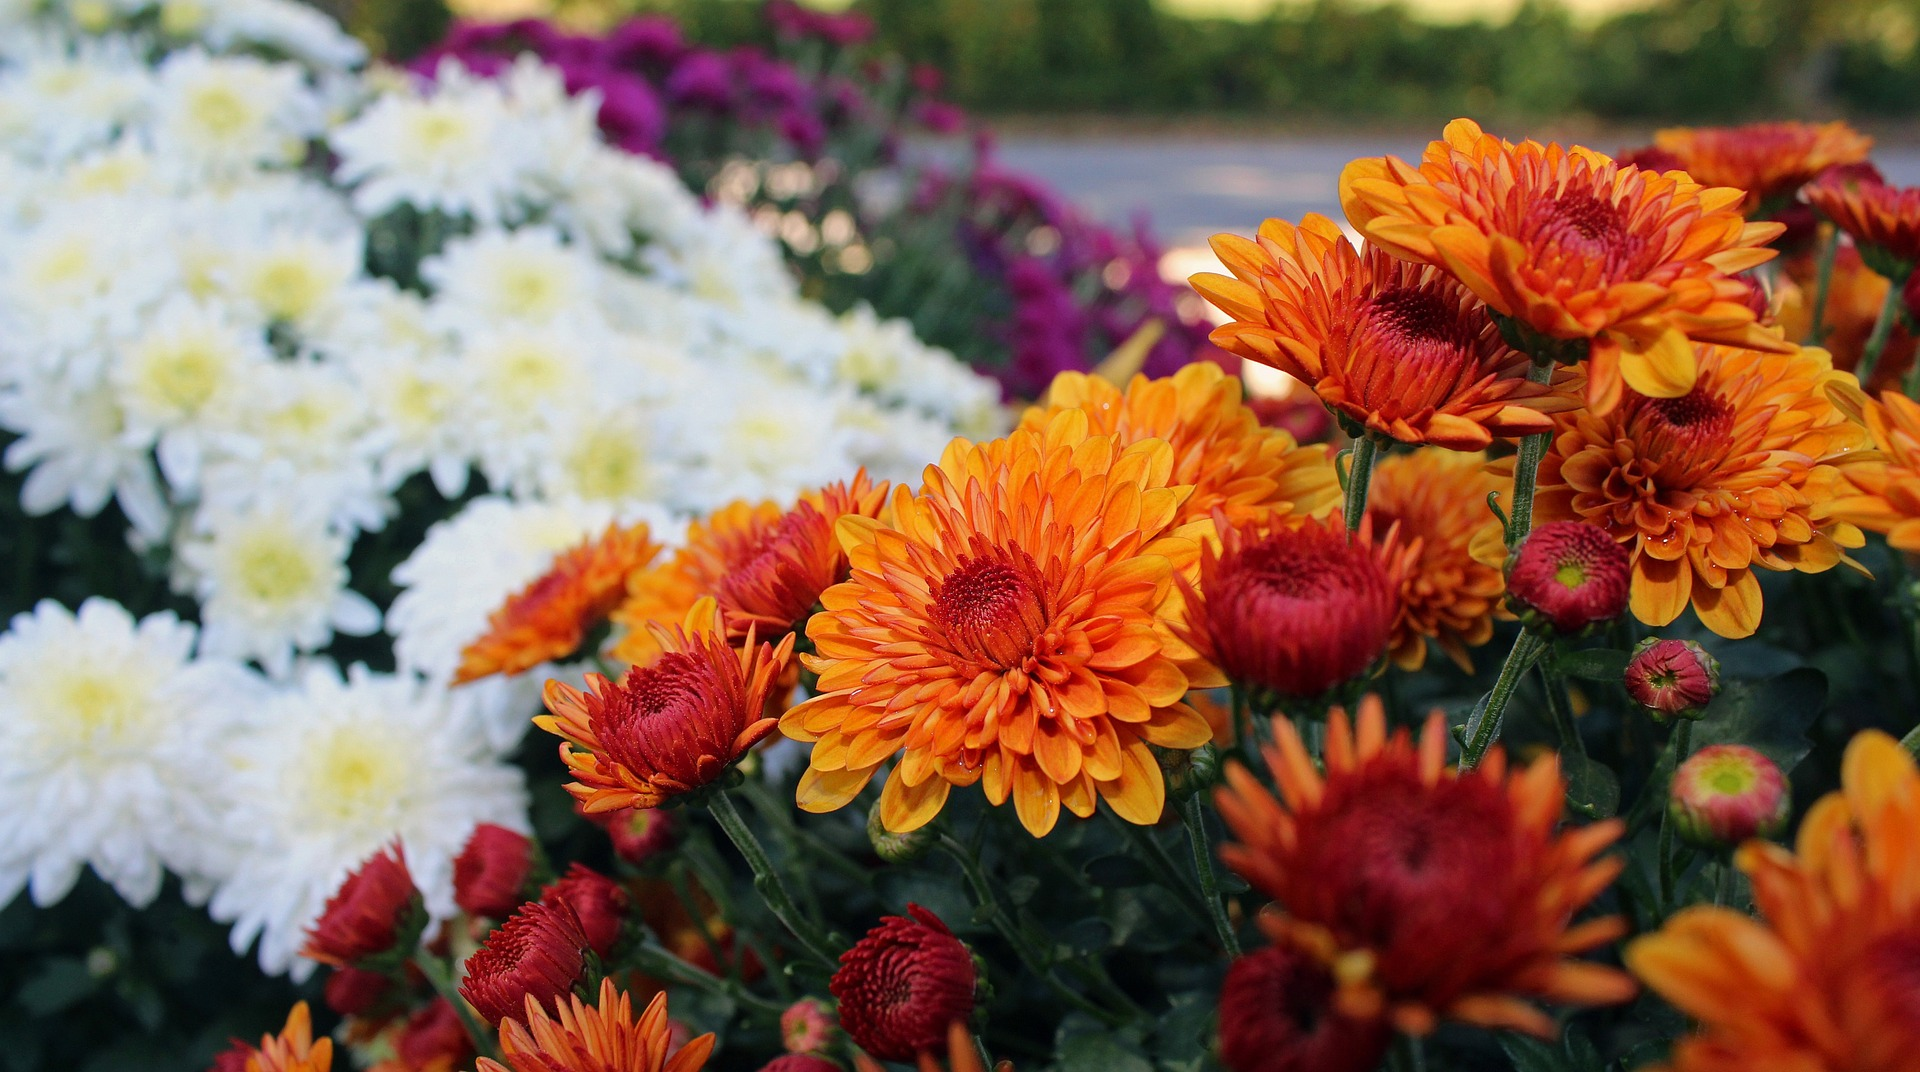 When to plant mums plant mums in spring overwintering mums the old farmer 39 s almanac - Flowers that bloom from spring to fall ...